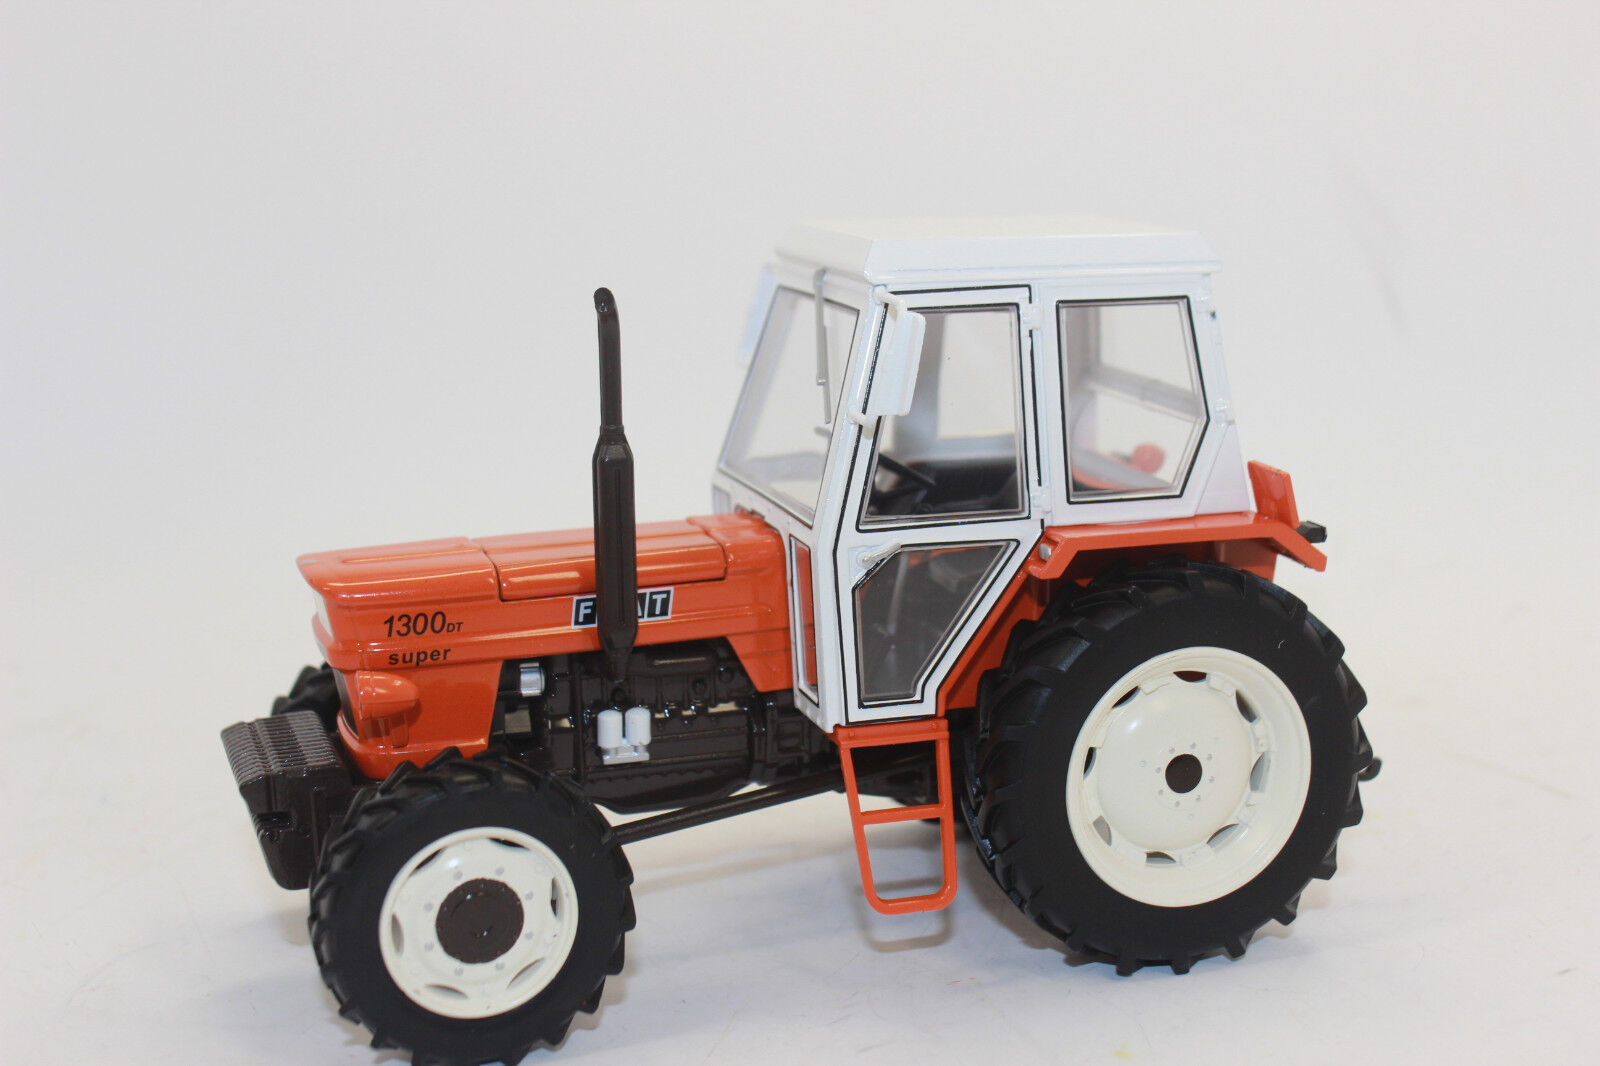 Replica Gri 039 Fiat 1300DT 4WD Tractor 1 3 2 New Boxed